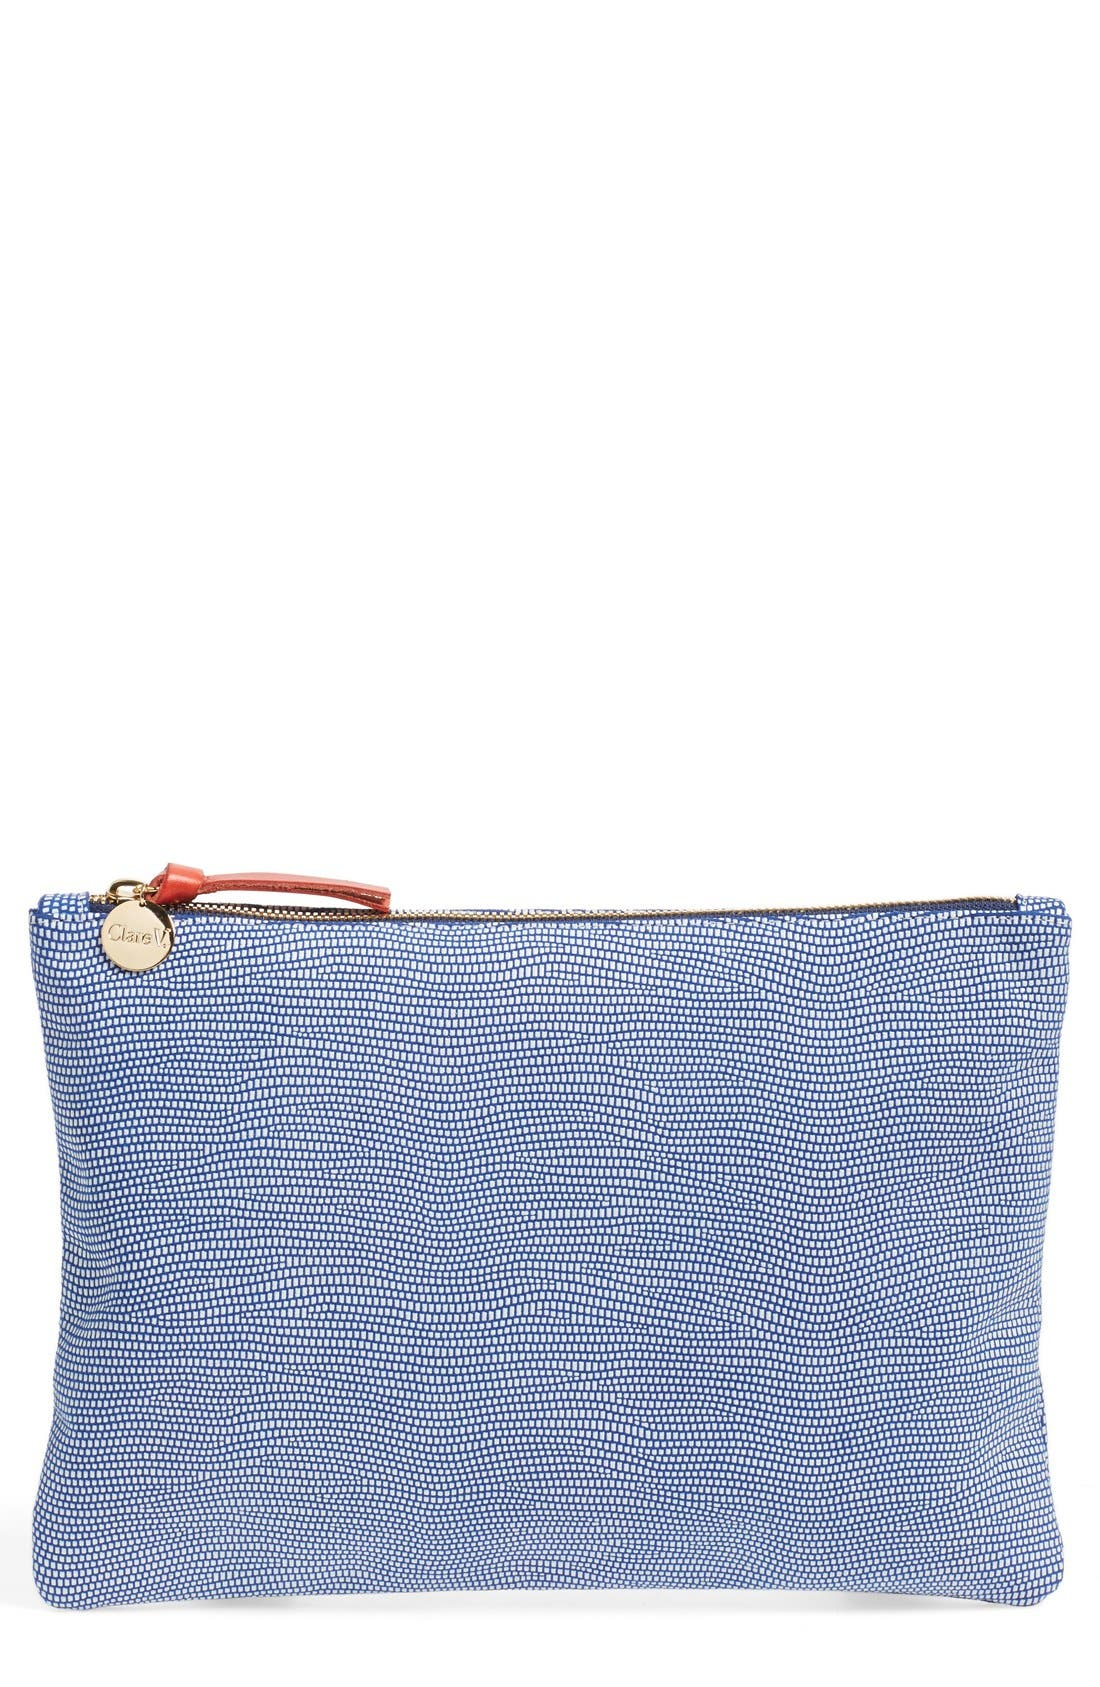 Alternate Image 1 Selected - Clare V. Lizard Embossed Leather Zip Clutch